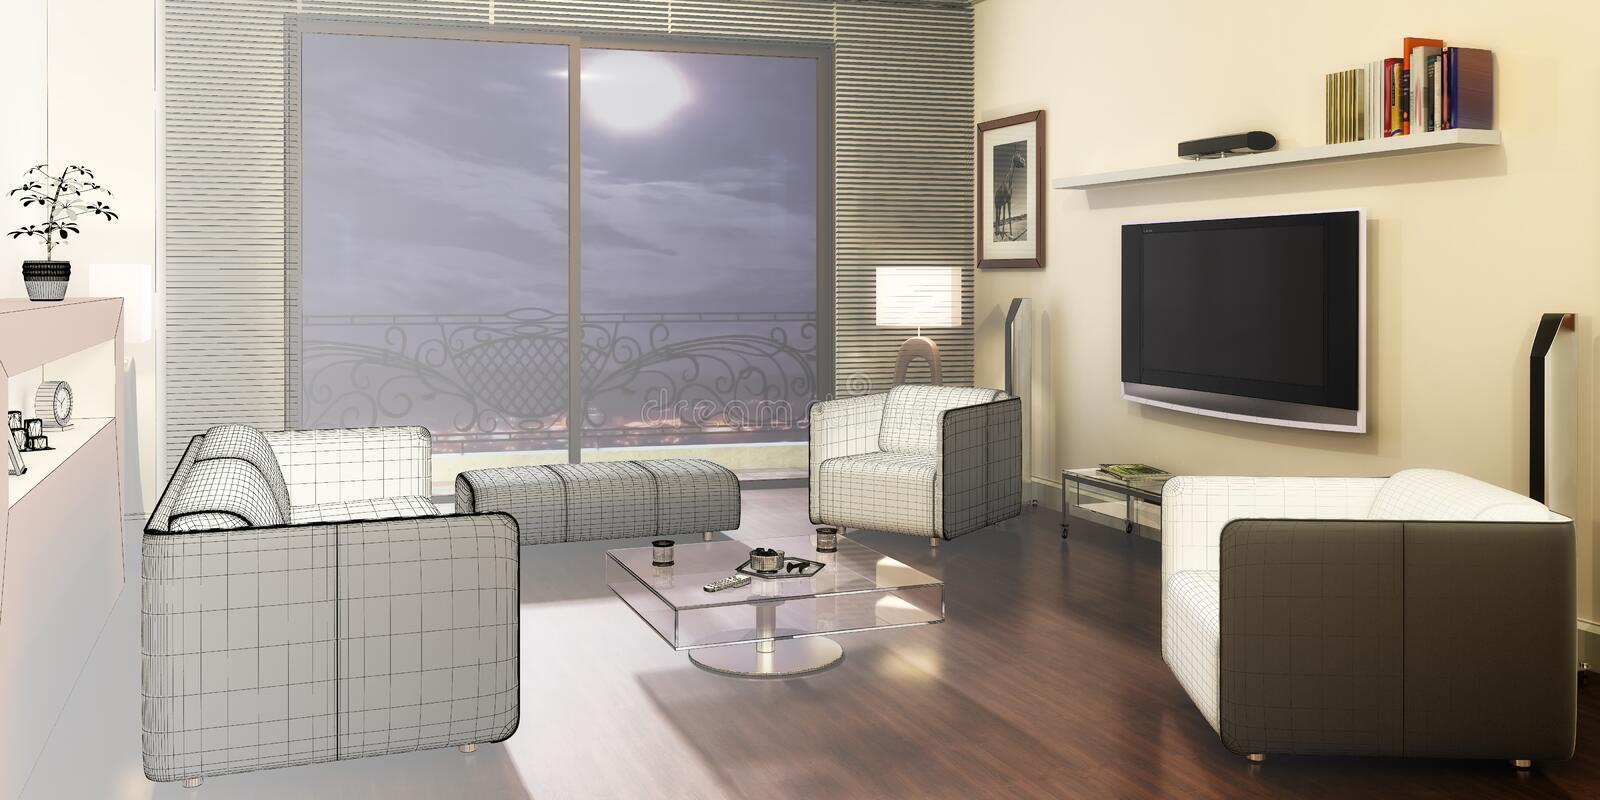 Apartment with a TV 3d. Apartment with a TV sketch - 3d visualization vector illustration